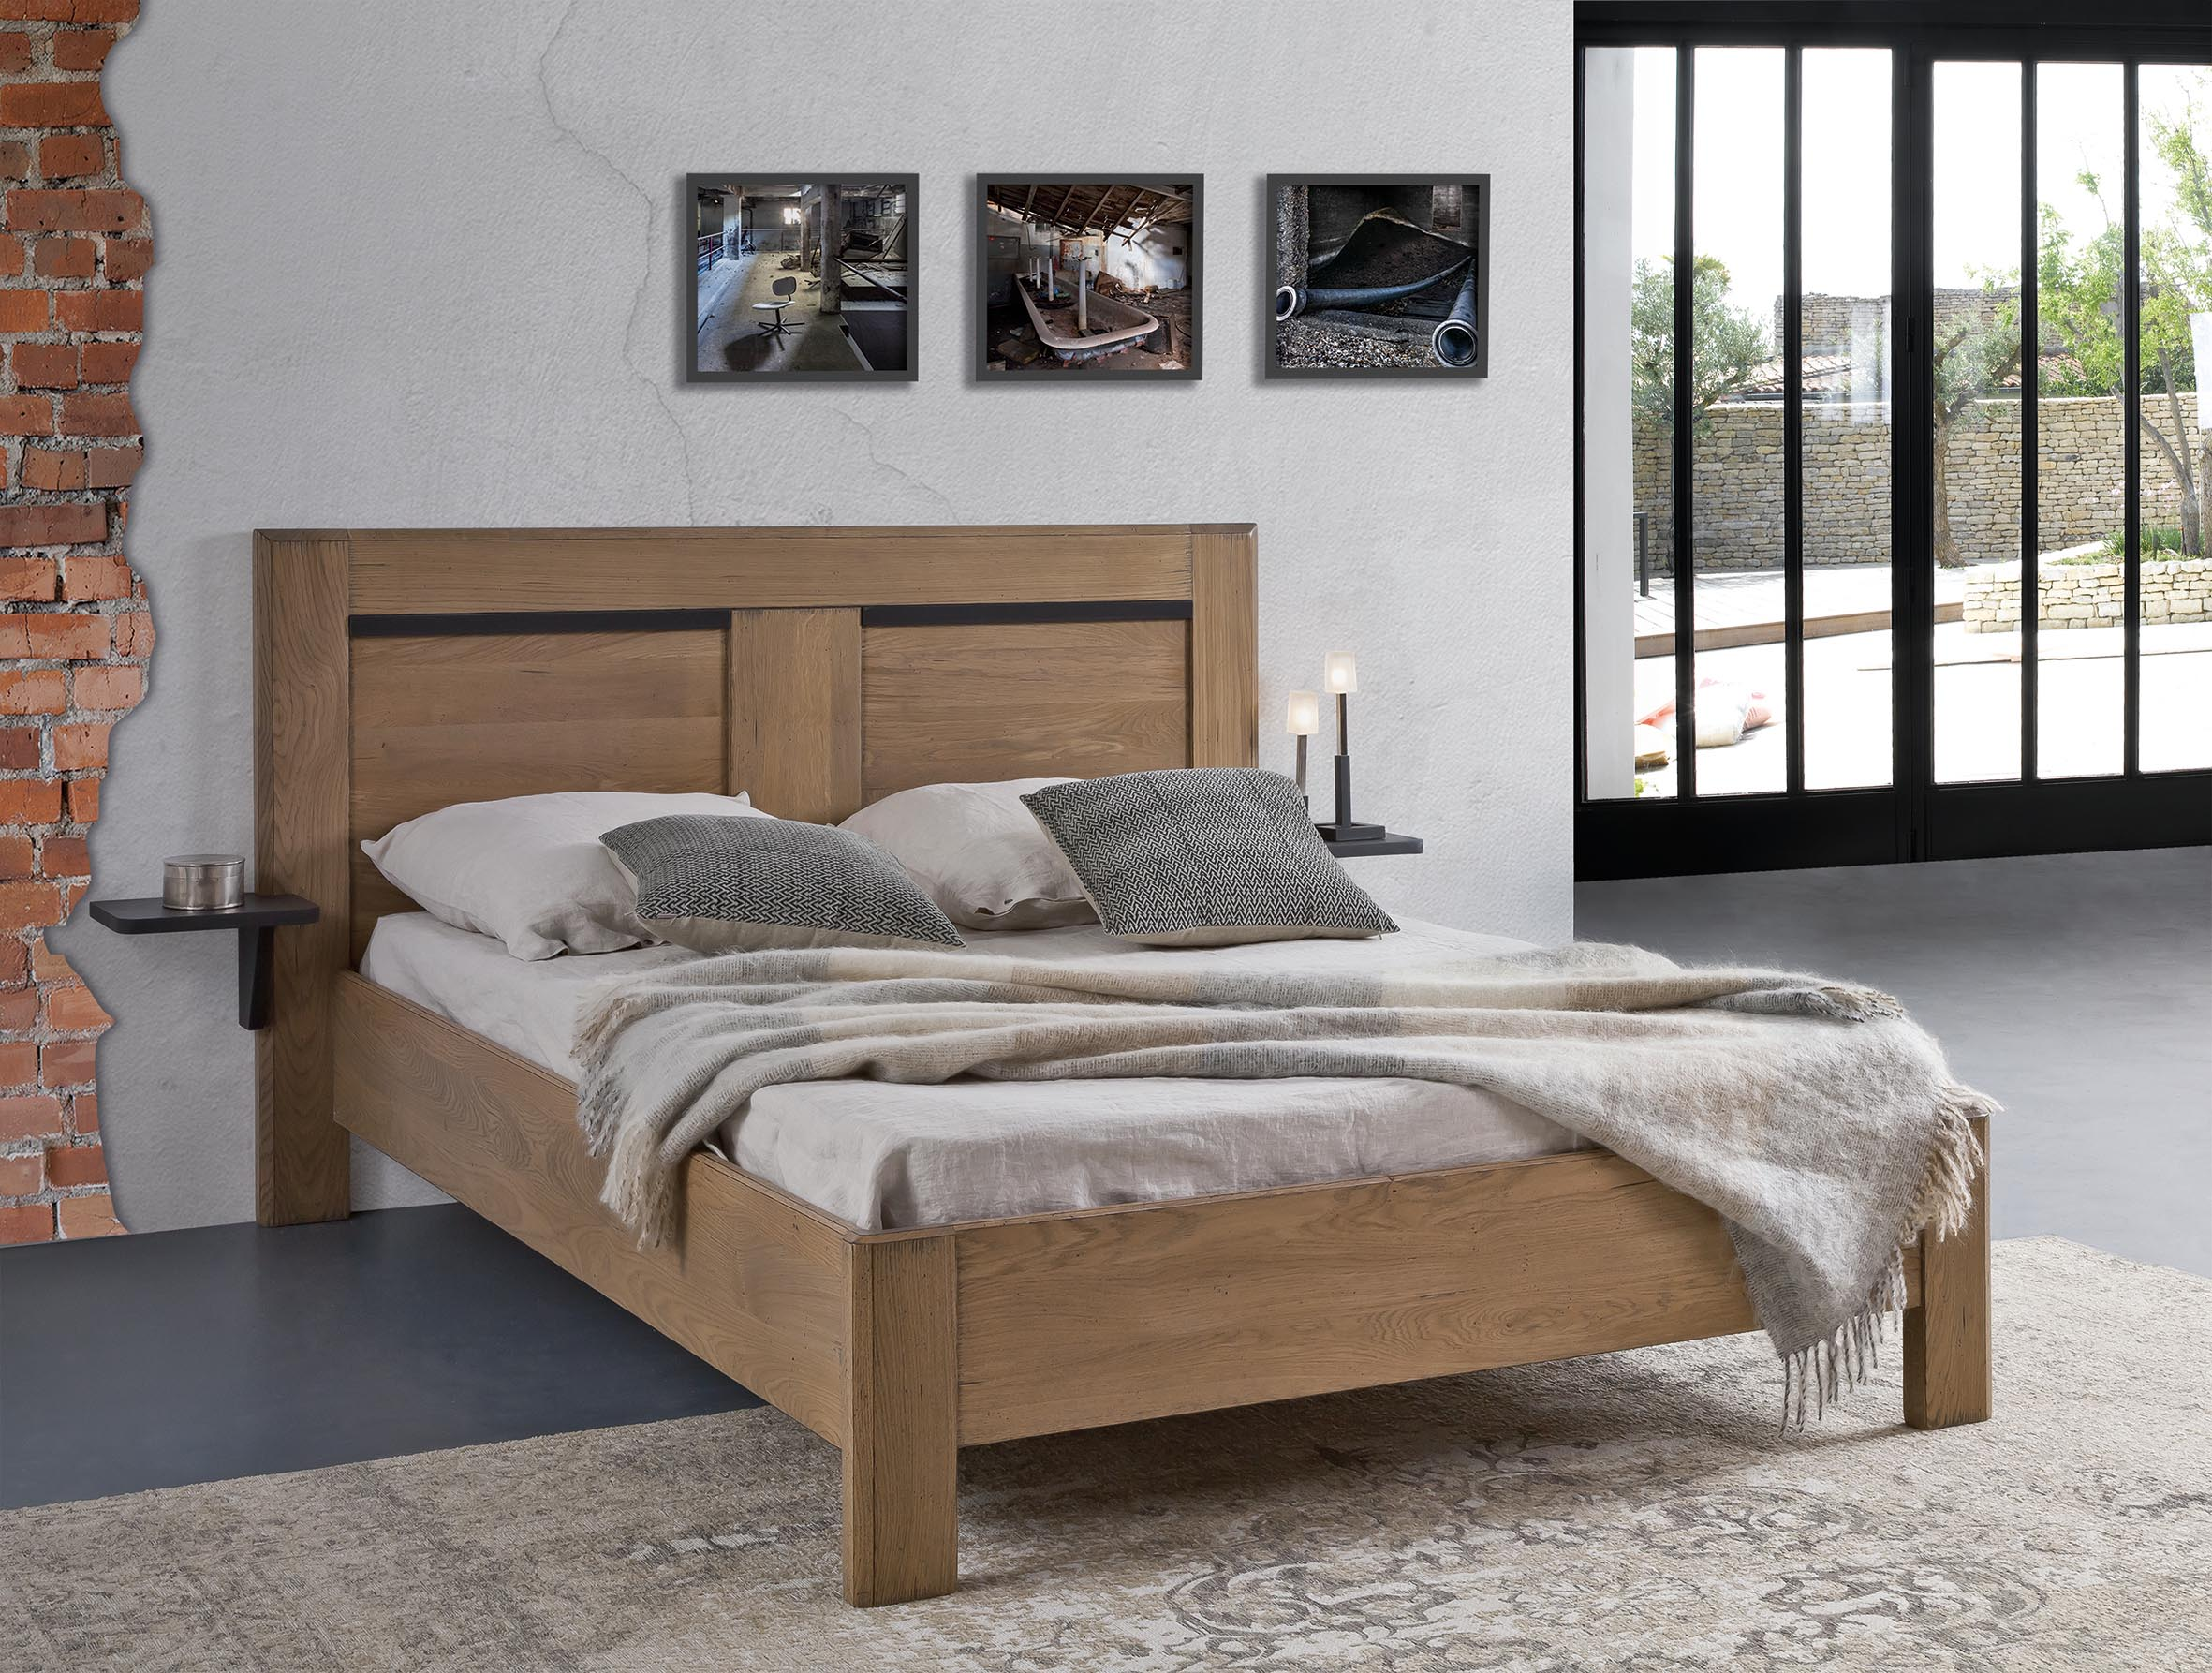 lit contemporain romance pour 160 x 200 ro1620. Black Bedroom Furniture Sets. Home Design Ideas